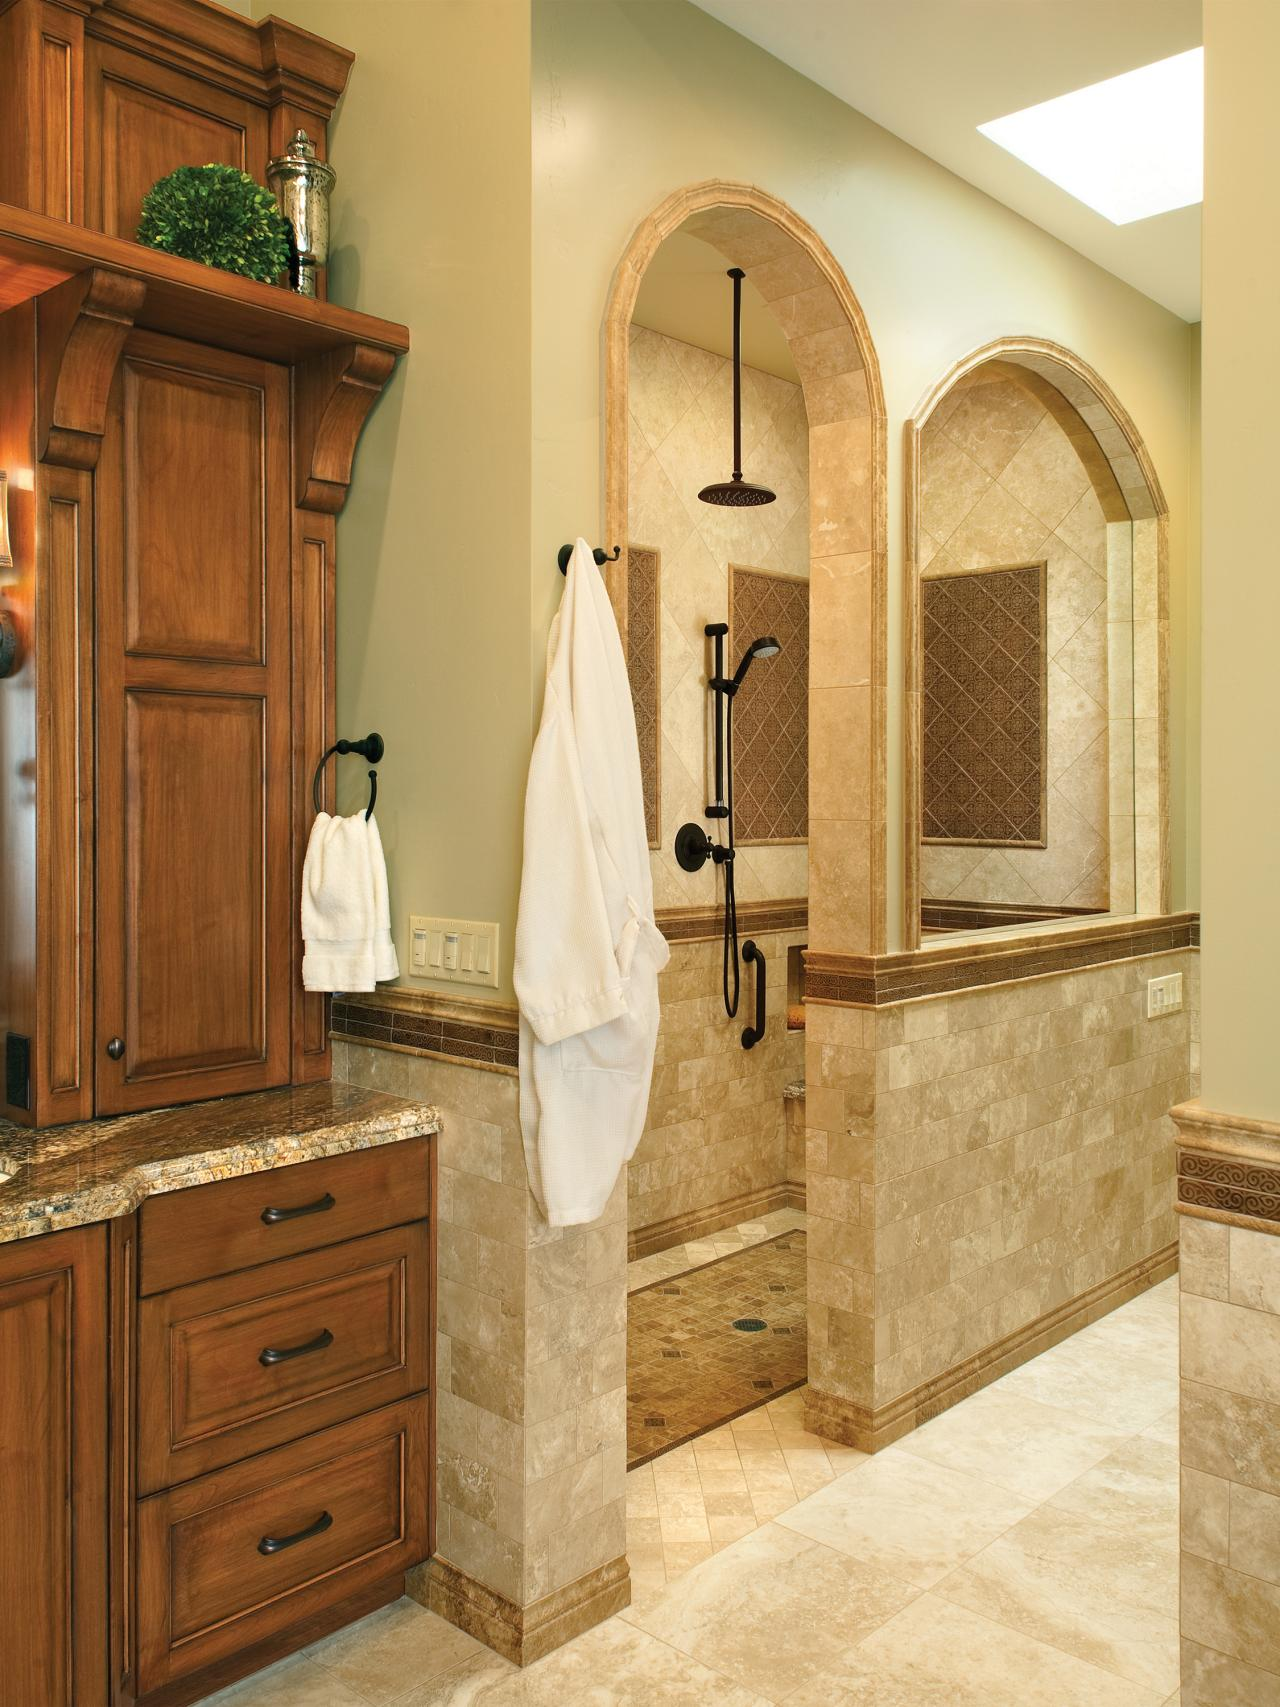 Traditional bathroom designs hgtv for Traditional bathroom ideas photo gallery